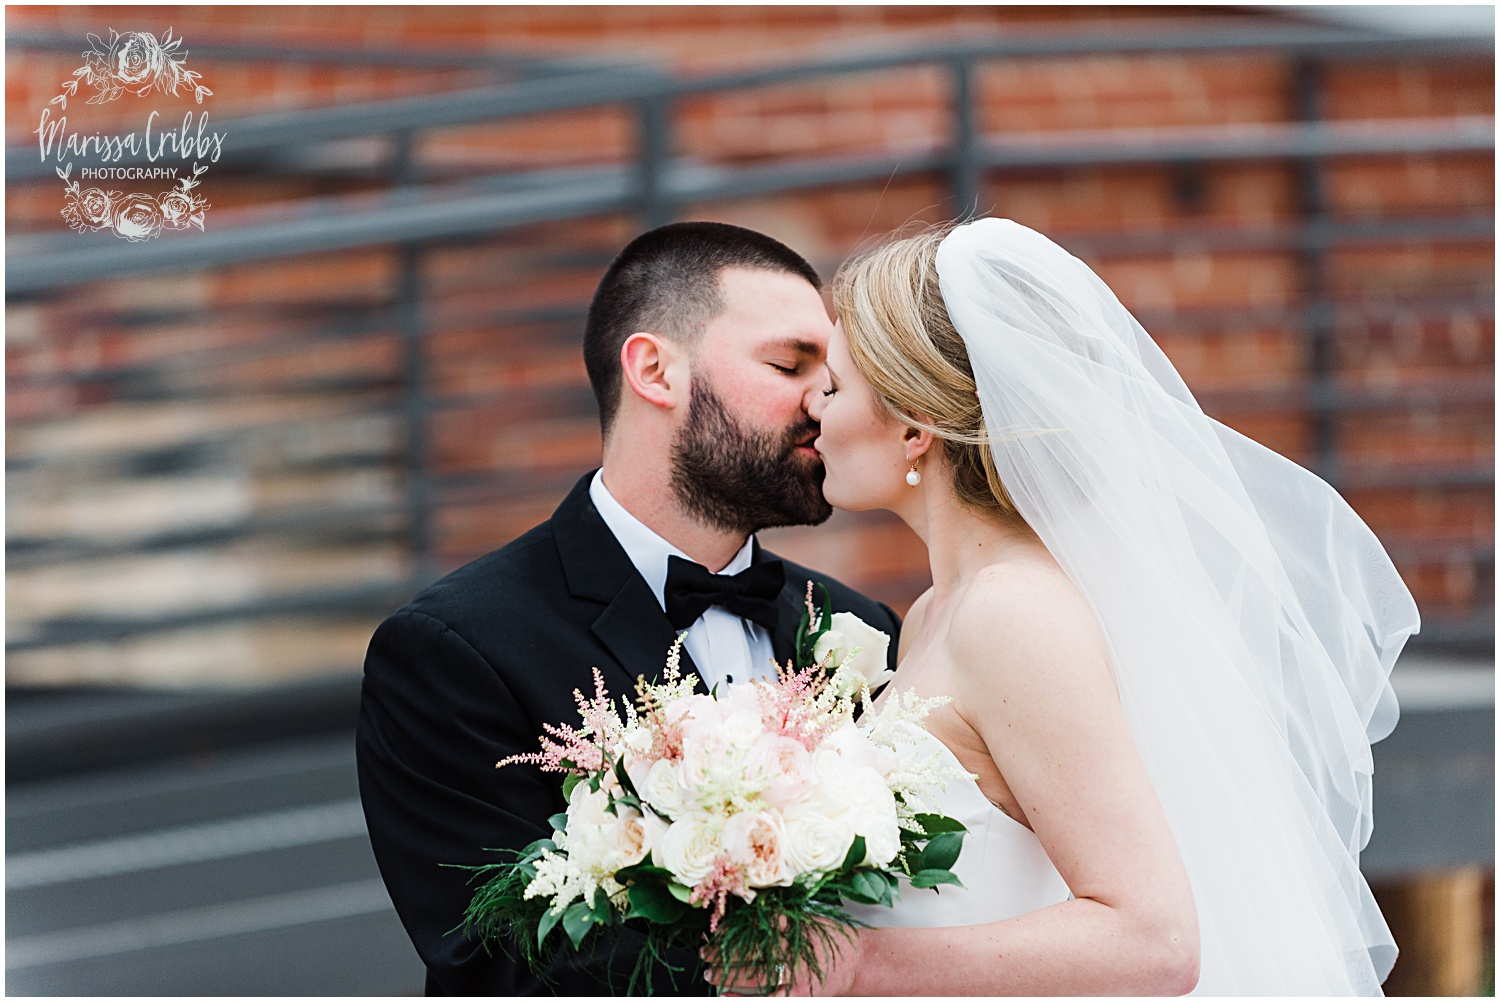 ABBY & CHARLIE WEDDING | THE HUDSON EVENT SPACE WEDDING | MARISSA CRIBBS PHOTOGRAPHY_7510.jpg